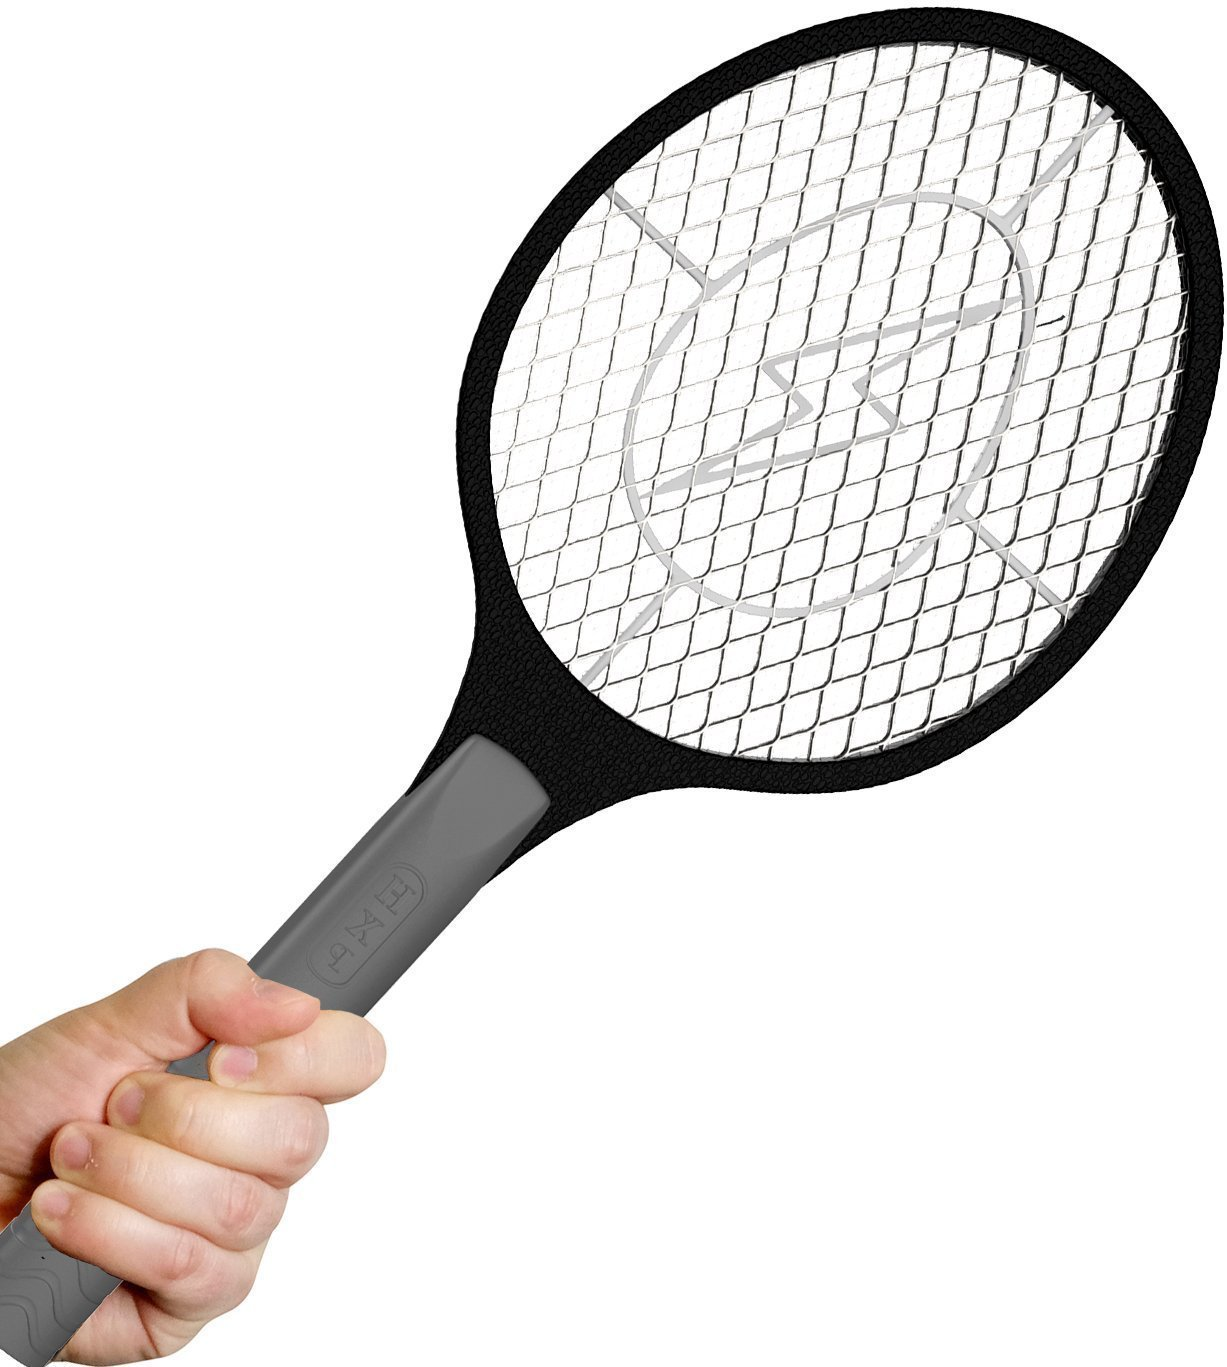 Bugzoff Electric Fly Swatter [Destroys Insects in Seconds] Mosquito Repellent & Insect Bug Killer Best Zapper Racket for Flies - Swat Wasp Insect Repellent Indoor and Outdoor Trap & Zap Pest Control